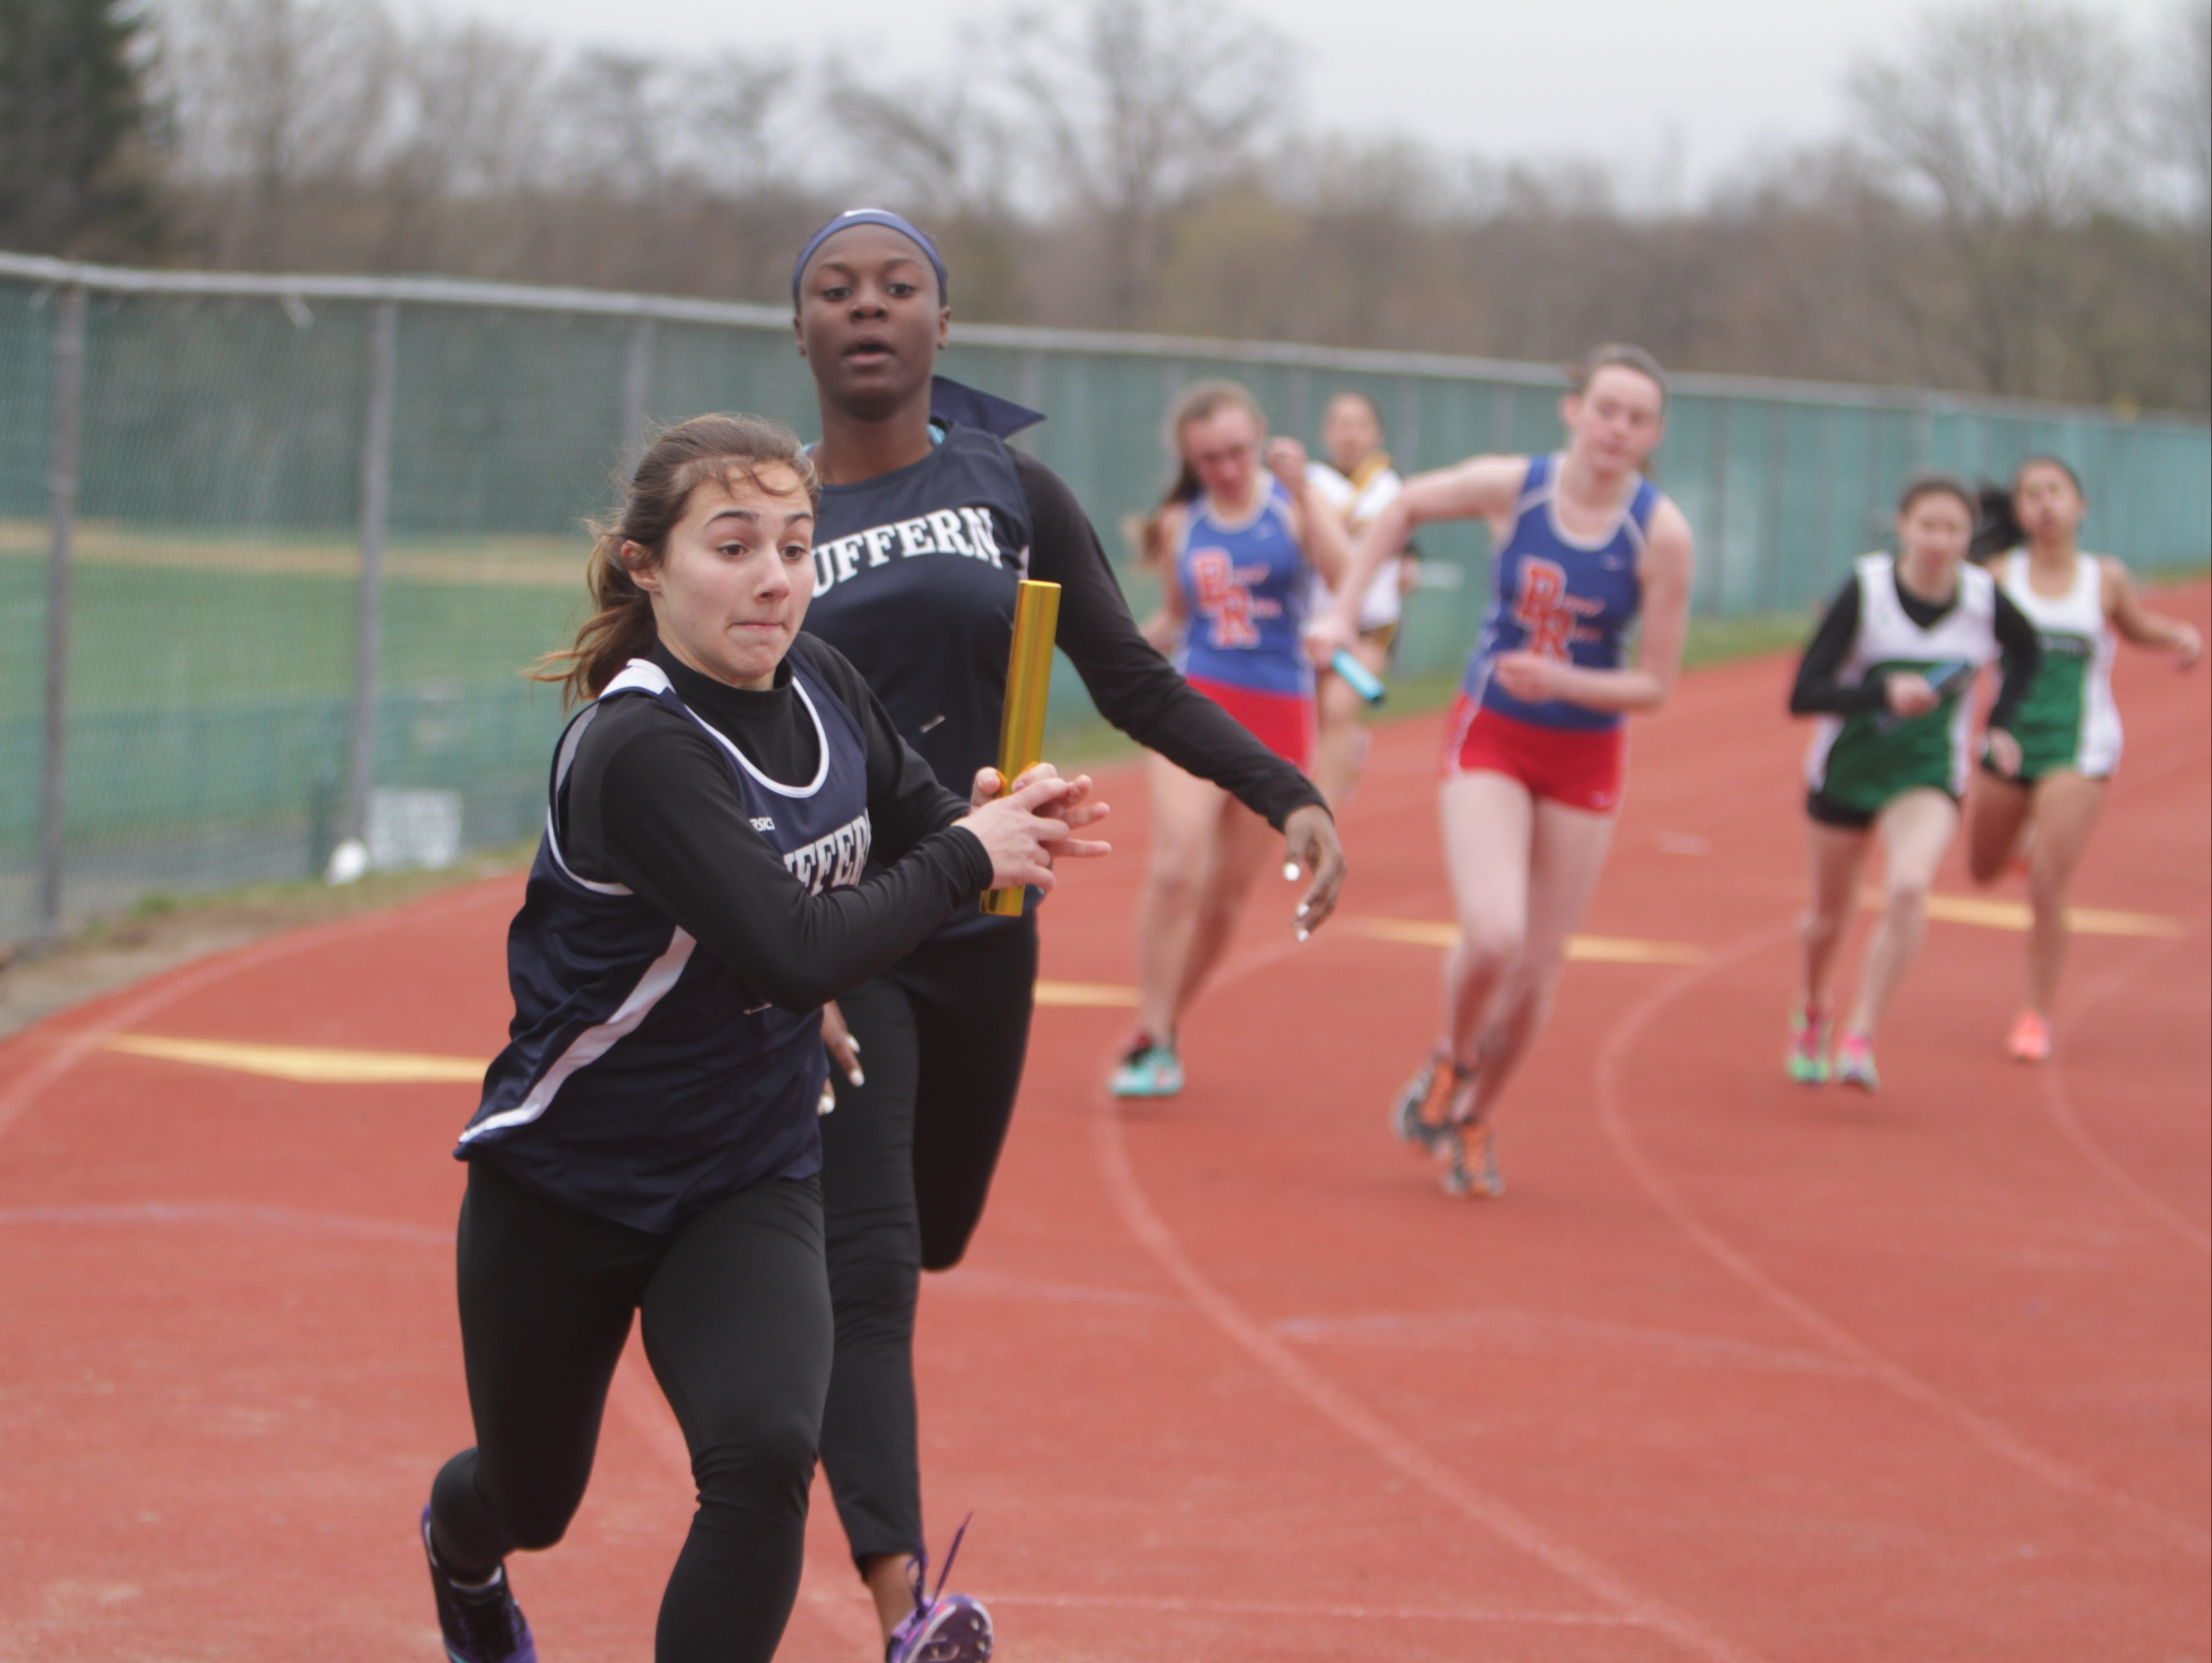 Suffern's Nadia Nelson (second from right) hands off the baton to teammate Catherine Jones during the Nanuet Relays at Nanuet High School on Saturday, April 9th, 2016.